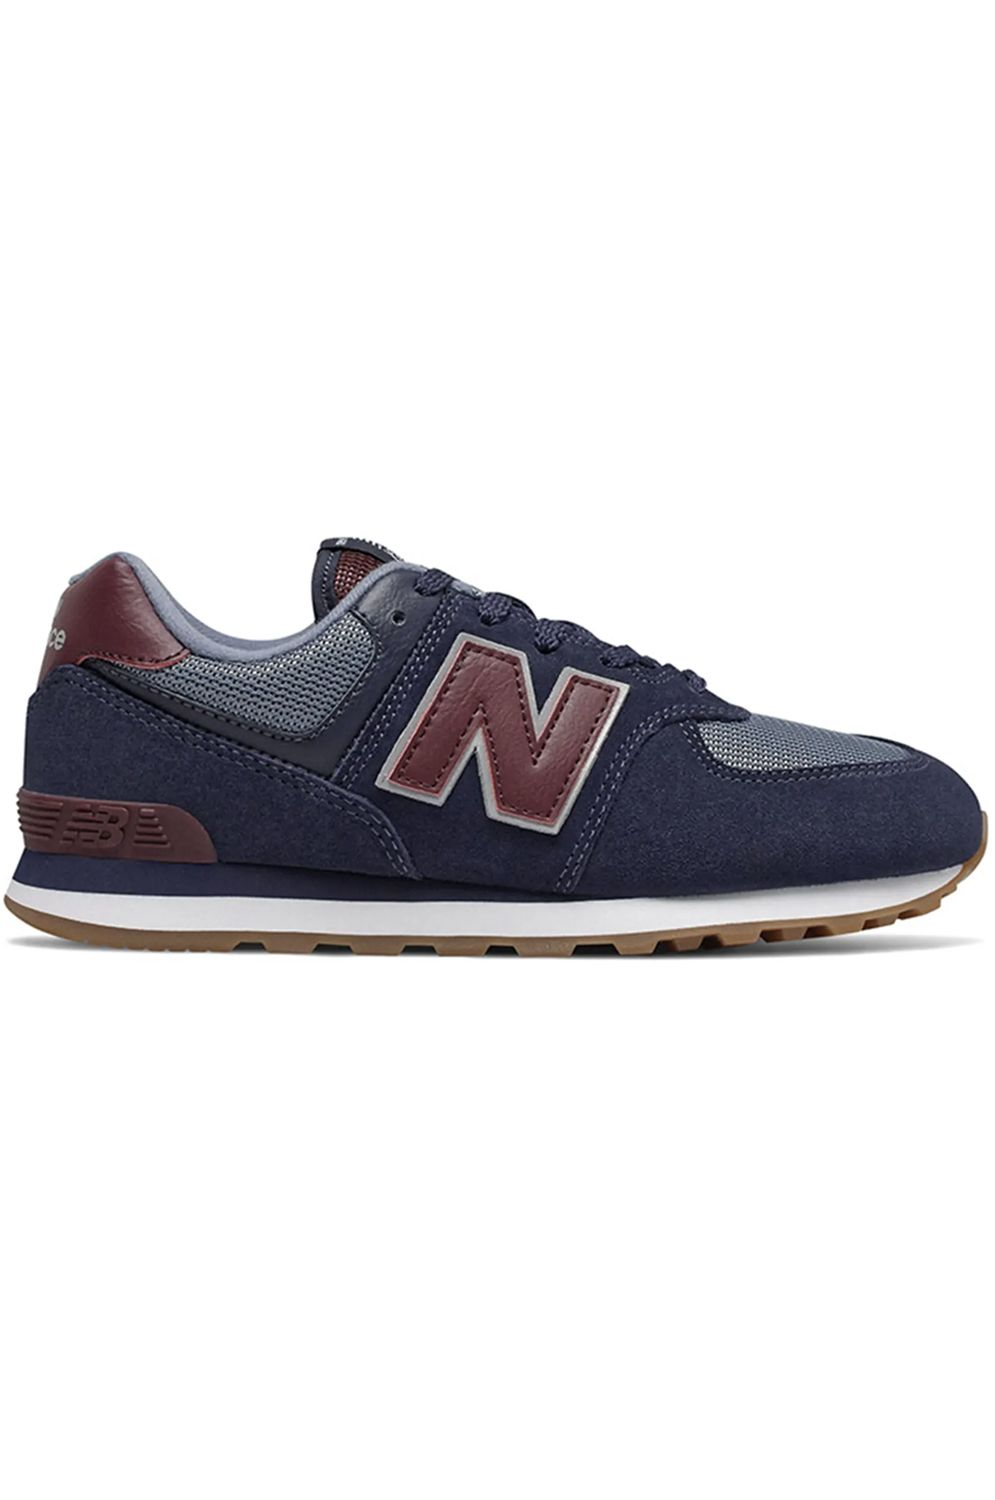 New Balance Shoes 574 CLASSIC KIDS Navy